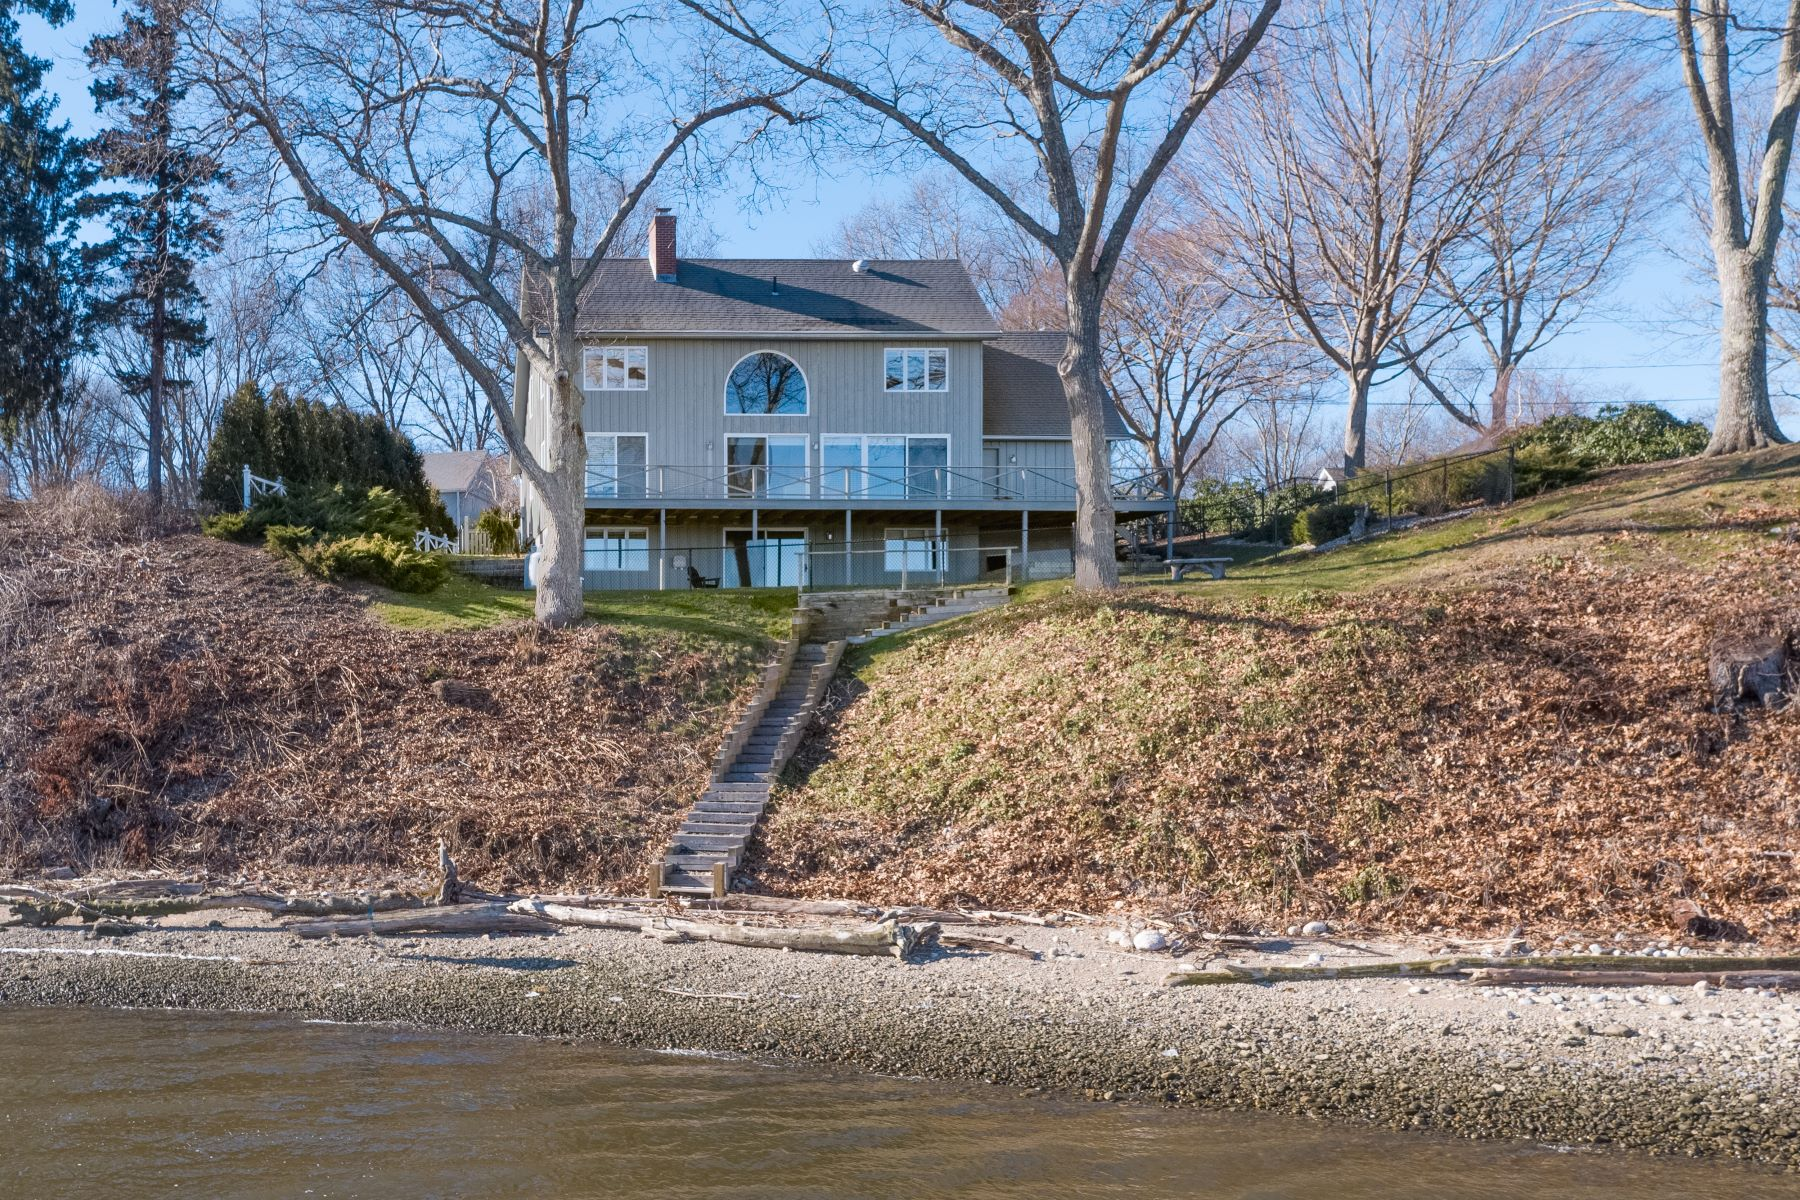 Single Family Homes for Sale at Ct. River Waterfront Cape 30 Riverside Avenue, Old Saybrook, Connecticut 06475 United States